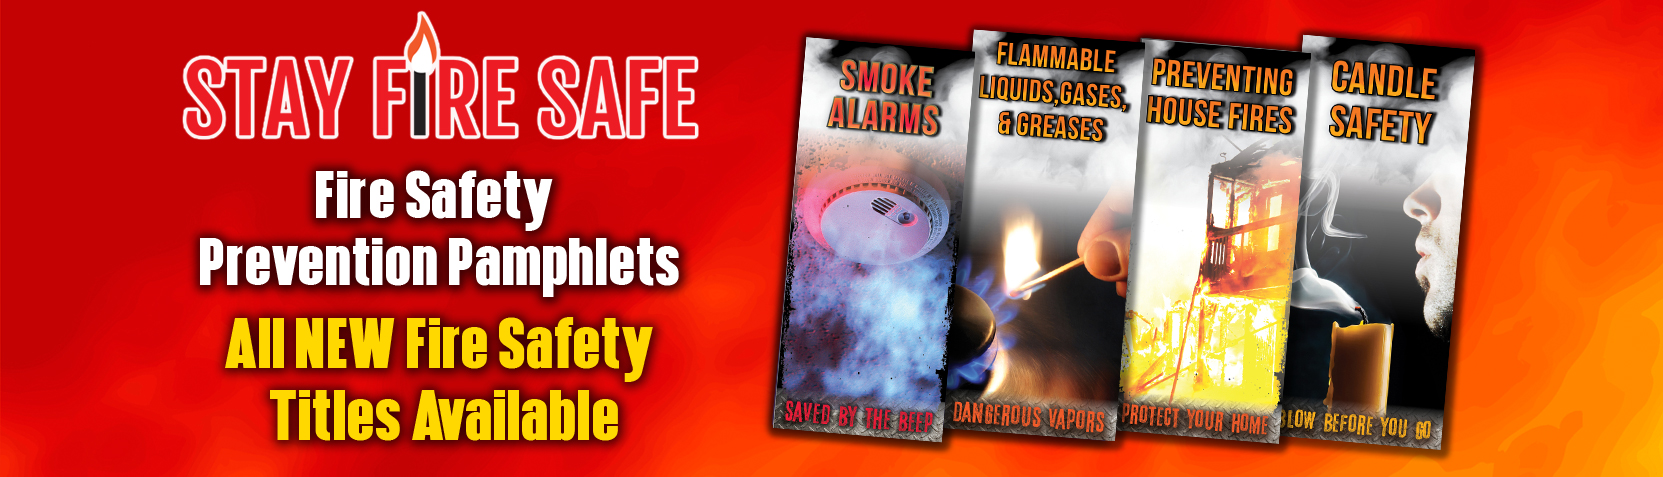 Fire-Safety-PAMPHLETS--WEB-Banner